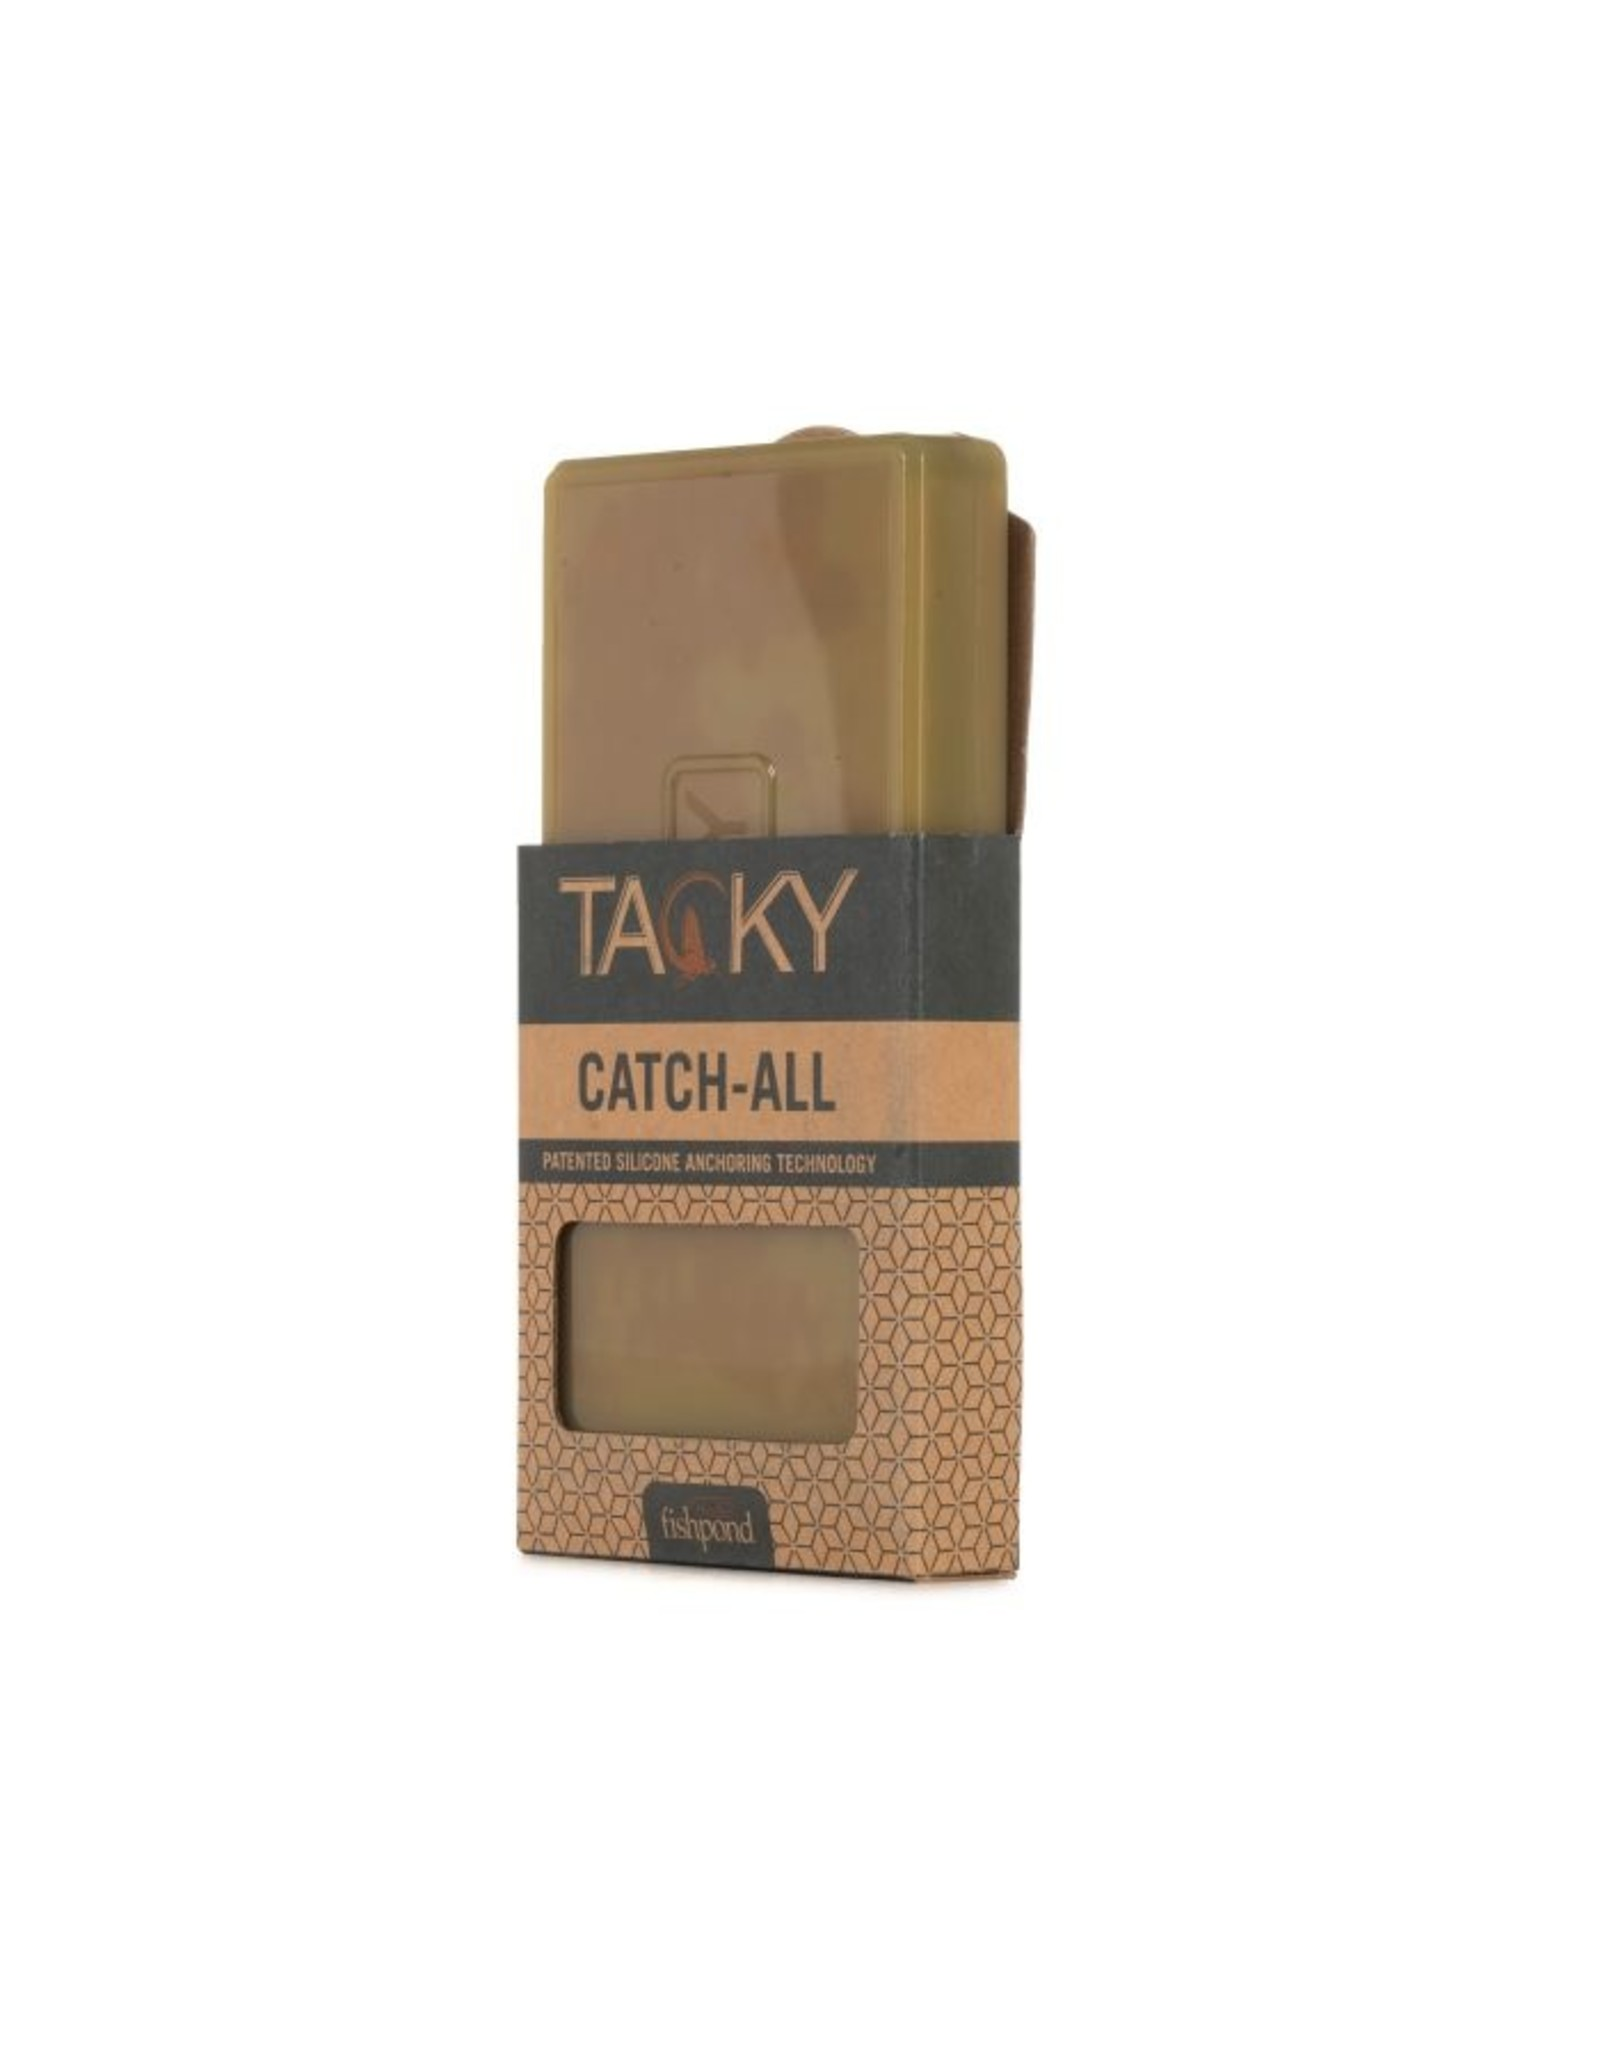 Fishpond Fishpond - Tacky Catch All Fly Box